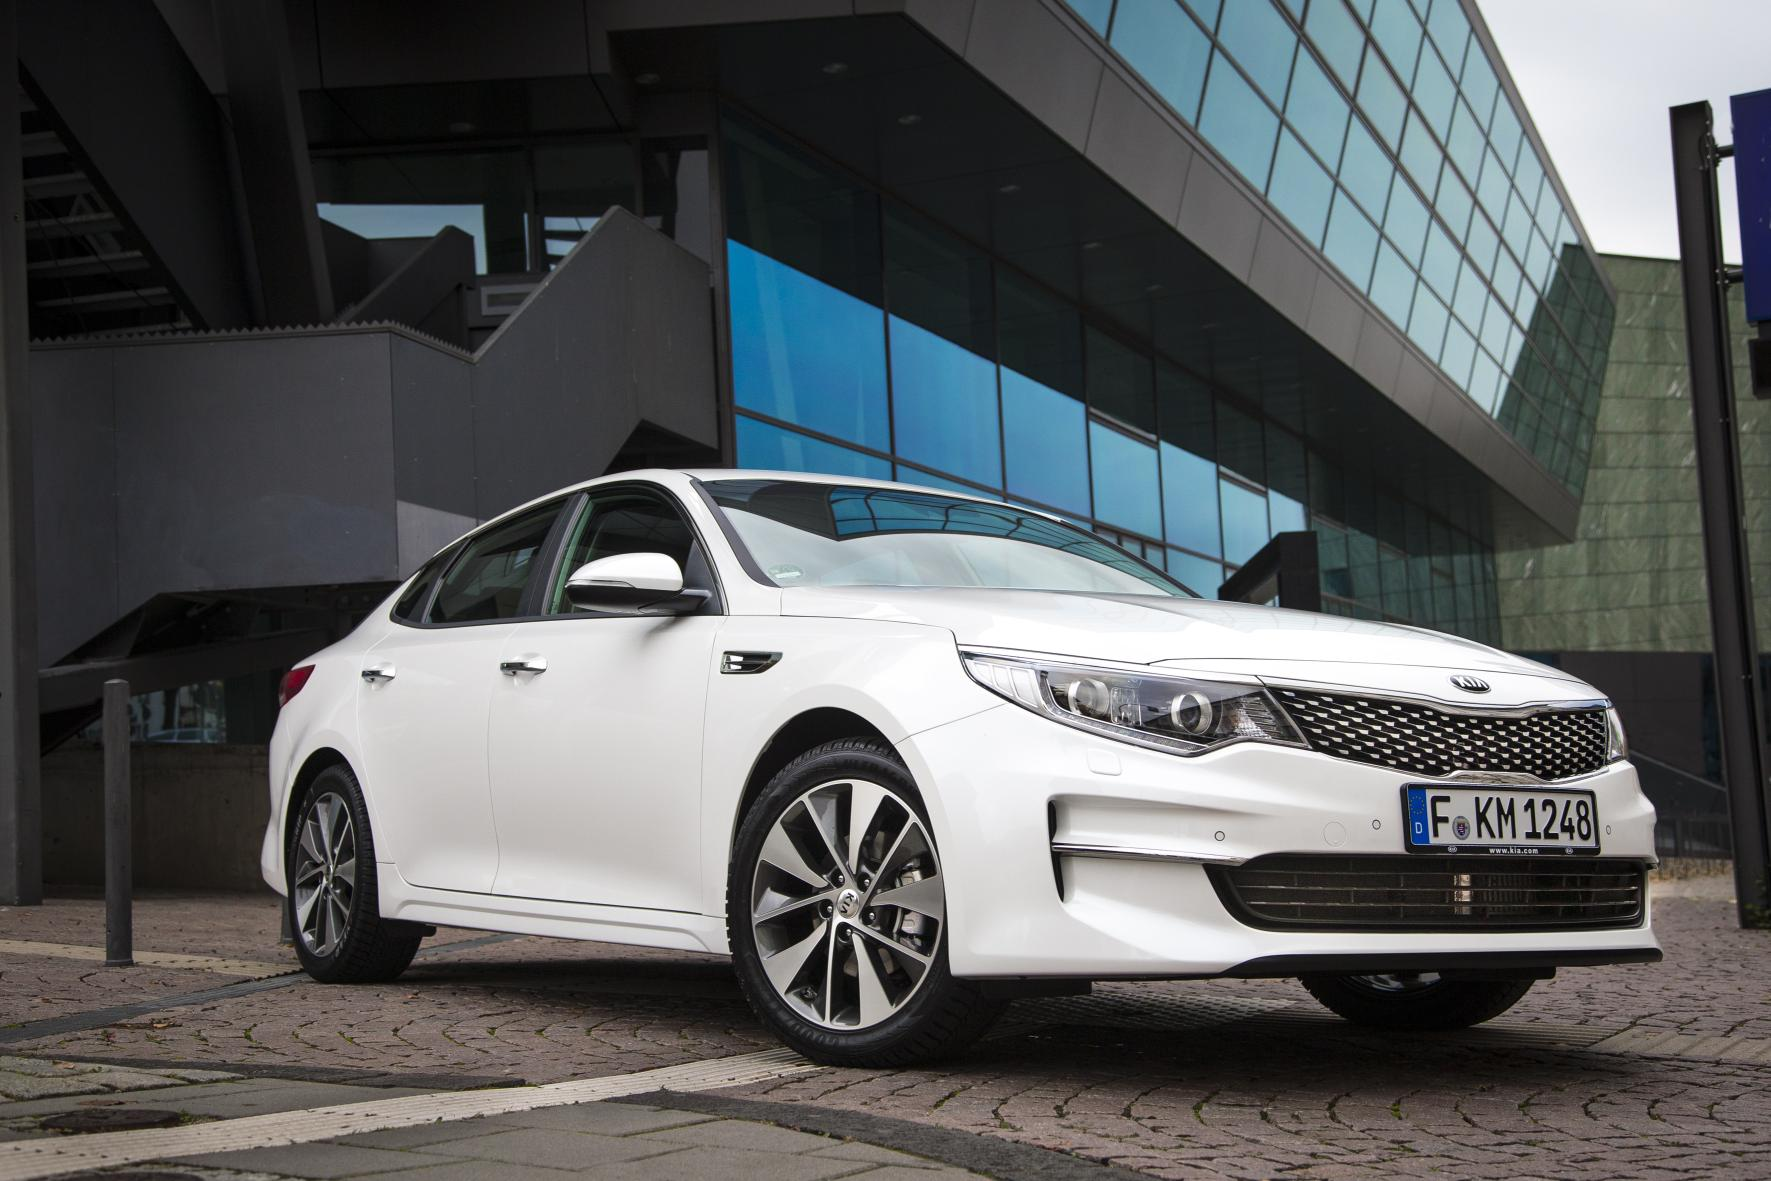 Kia Optima: Cleaning the Upholstery and Interior Trim